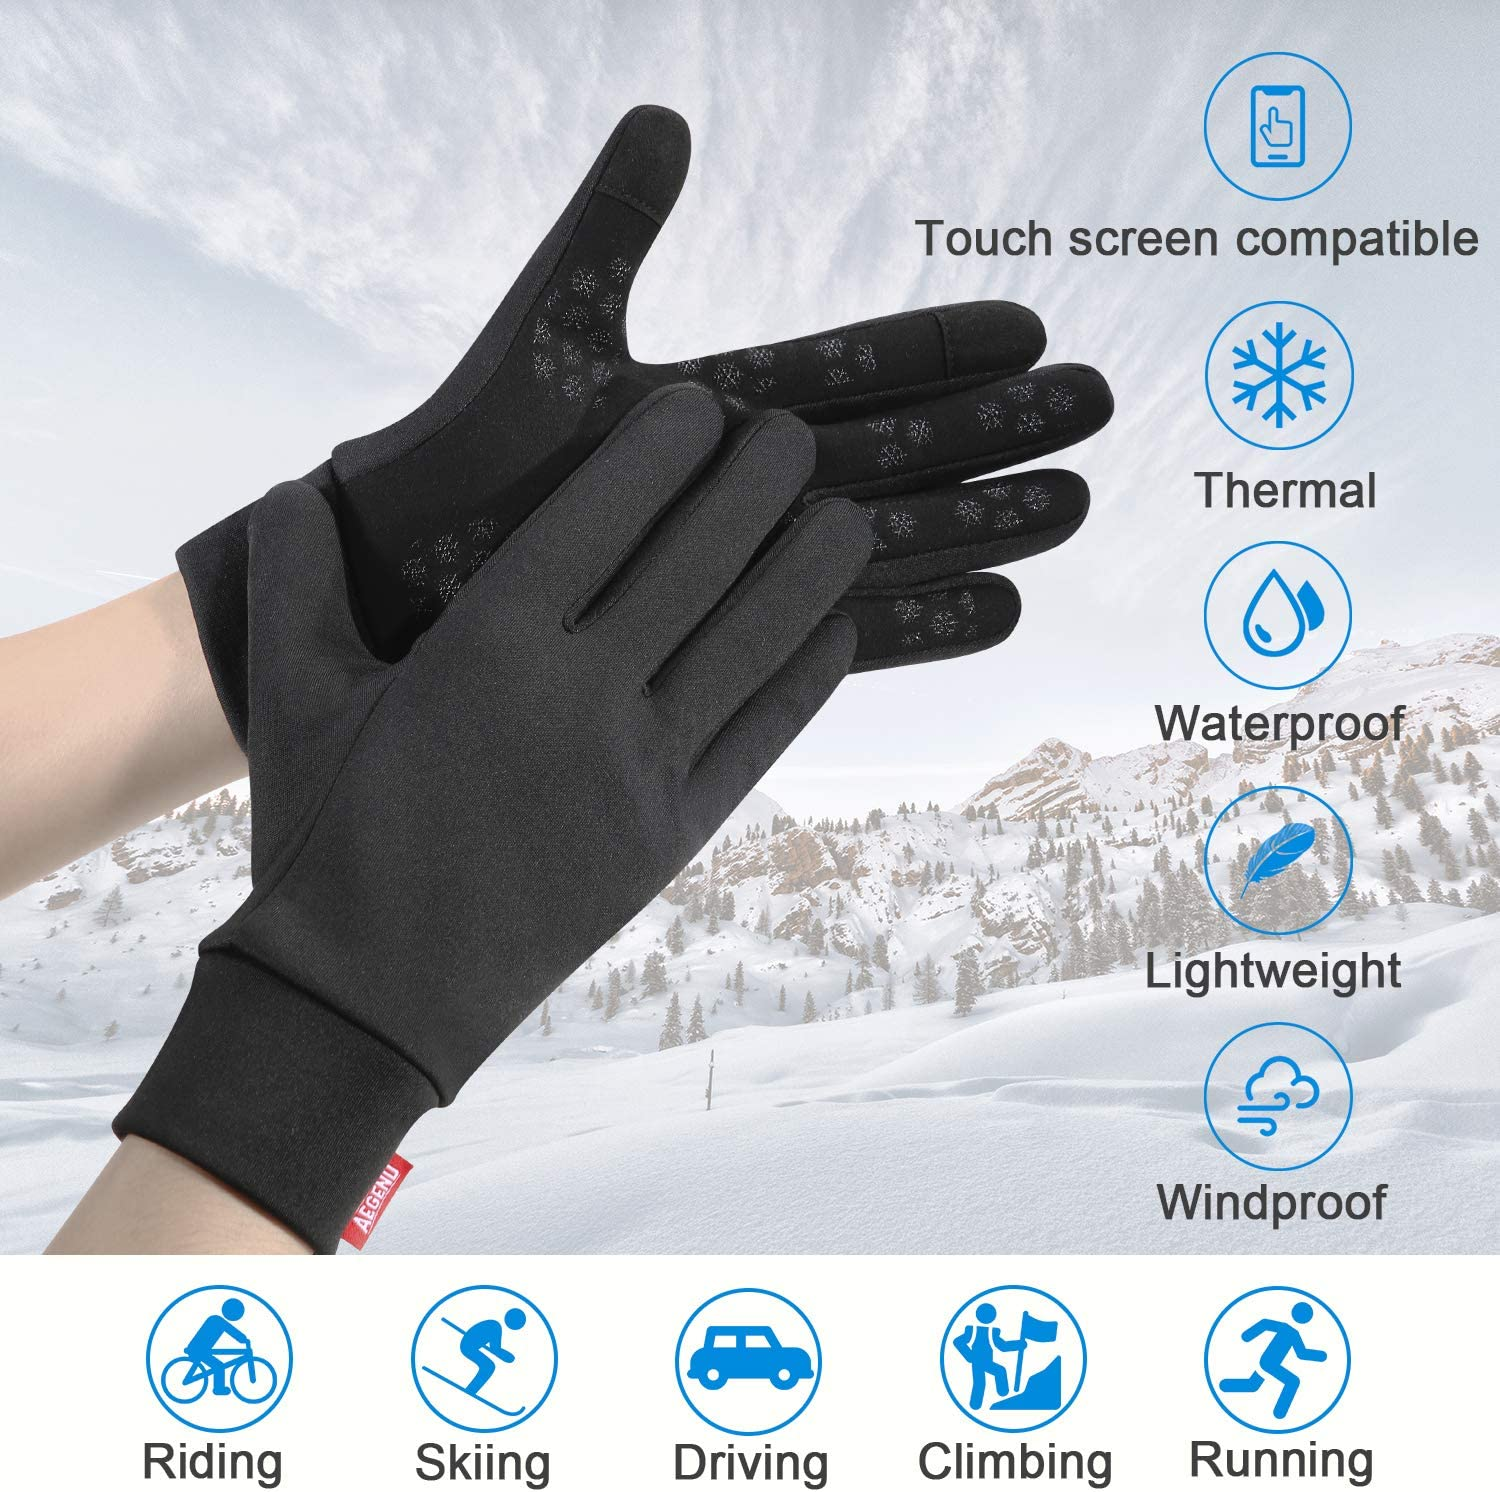 Walking Riding Aegend Waterproof Splash-Resistant Sports Running Gloves Touch Screen Lightweight Liner Gloves For Running Working Outdoor for Men Women In Winter Or Fall Black